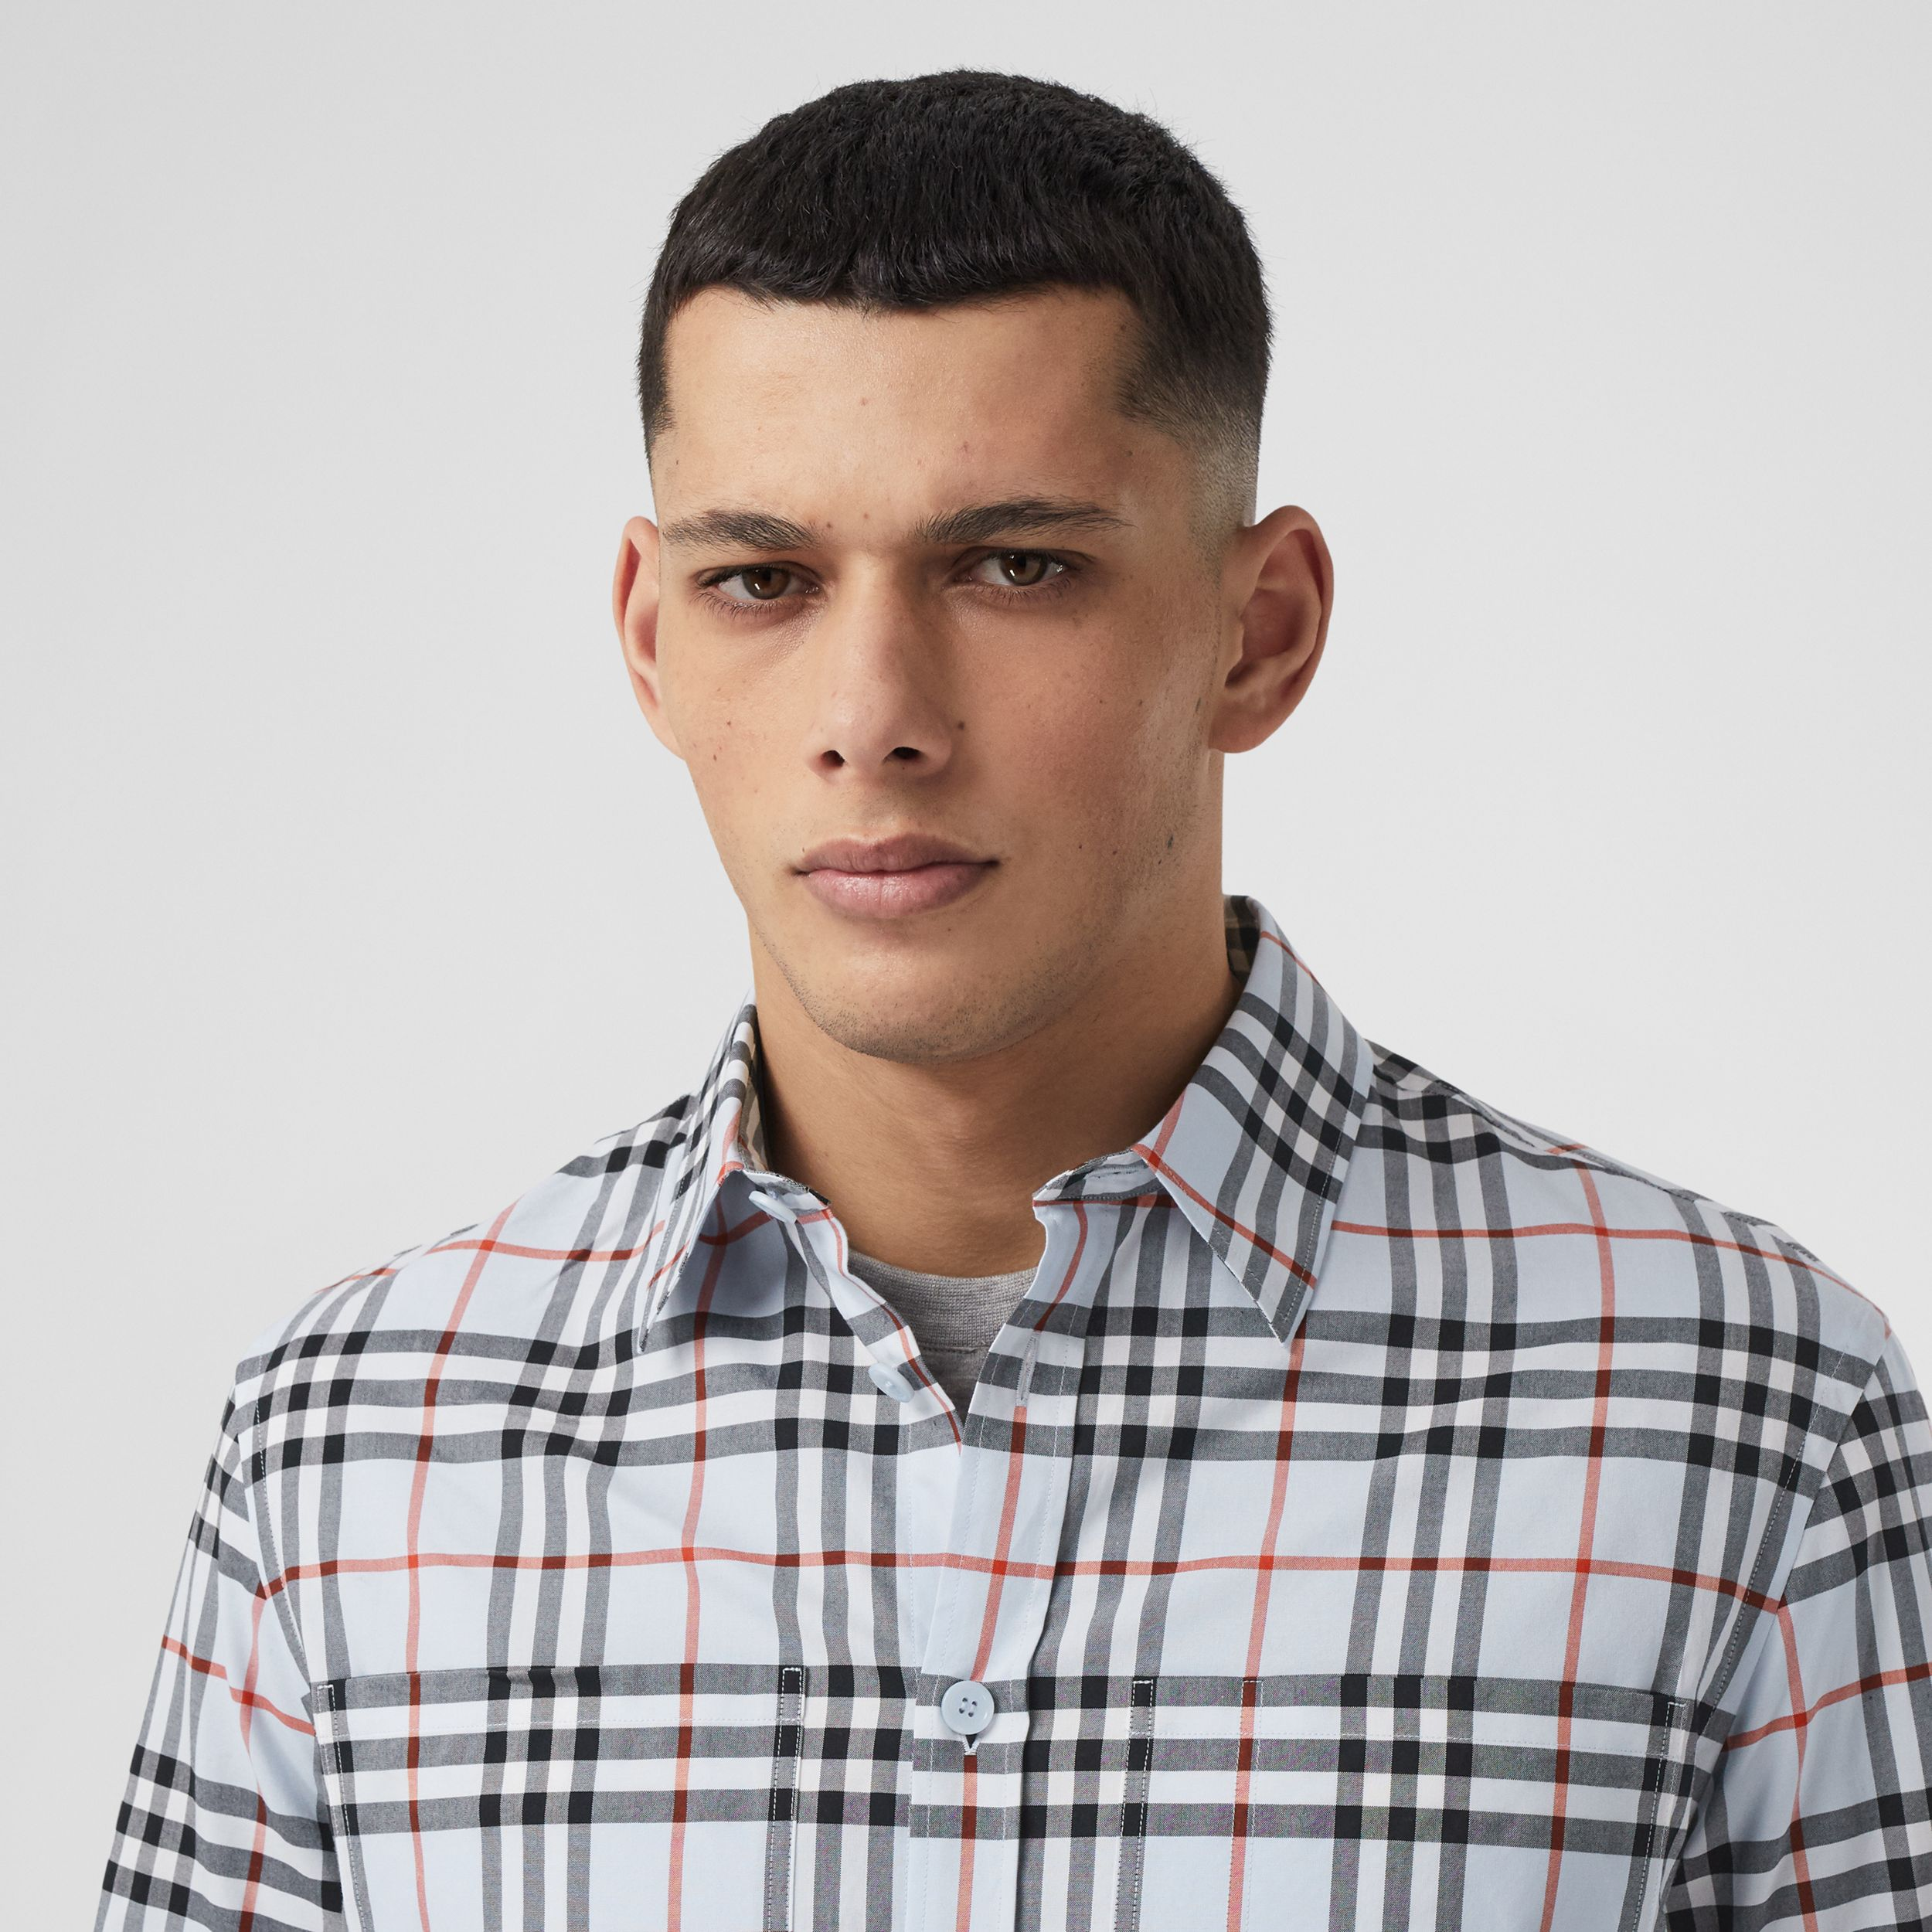 Logo Print Vintage Check Cotton Oversized Shirt – Online Exclusive in Pale Blue - Men | Burberry United Kingdom - 2